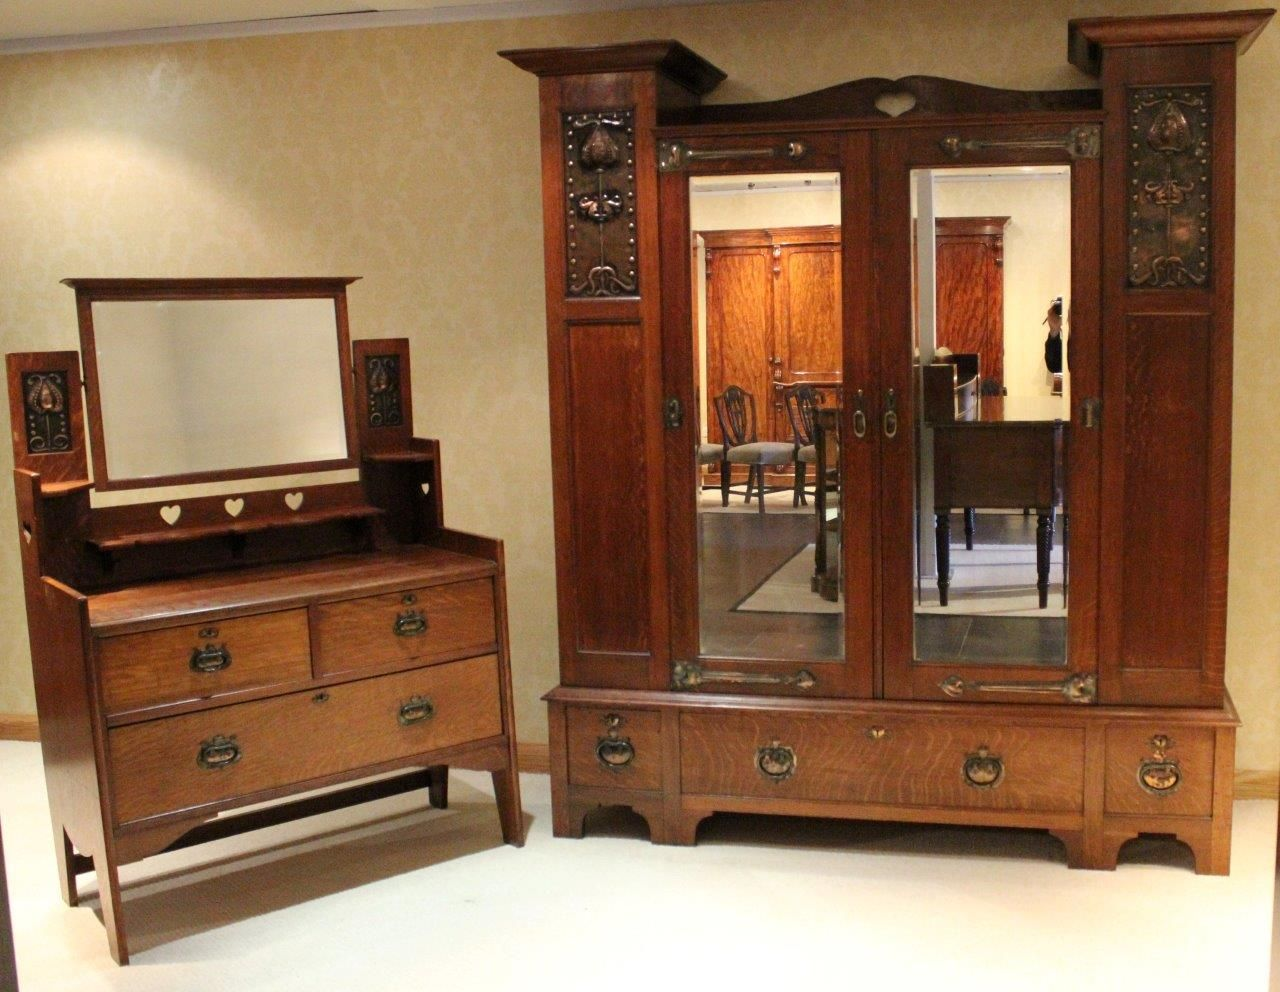 Antique arts and crafts furniture - A Rare Shapland Petter Arts Crafts Period Oak Wardrobe And Dressing